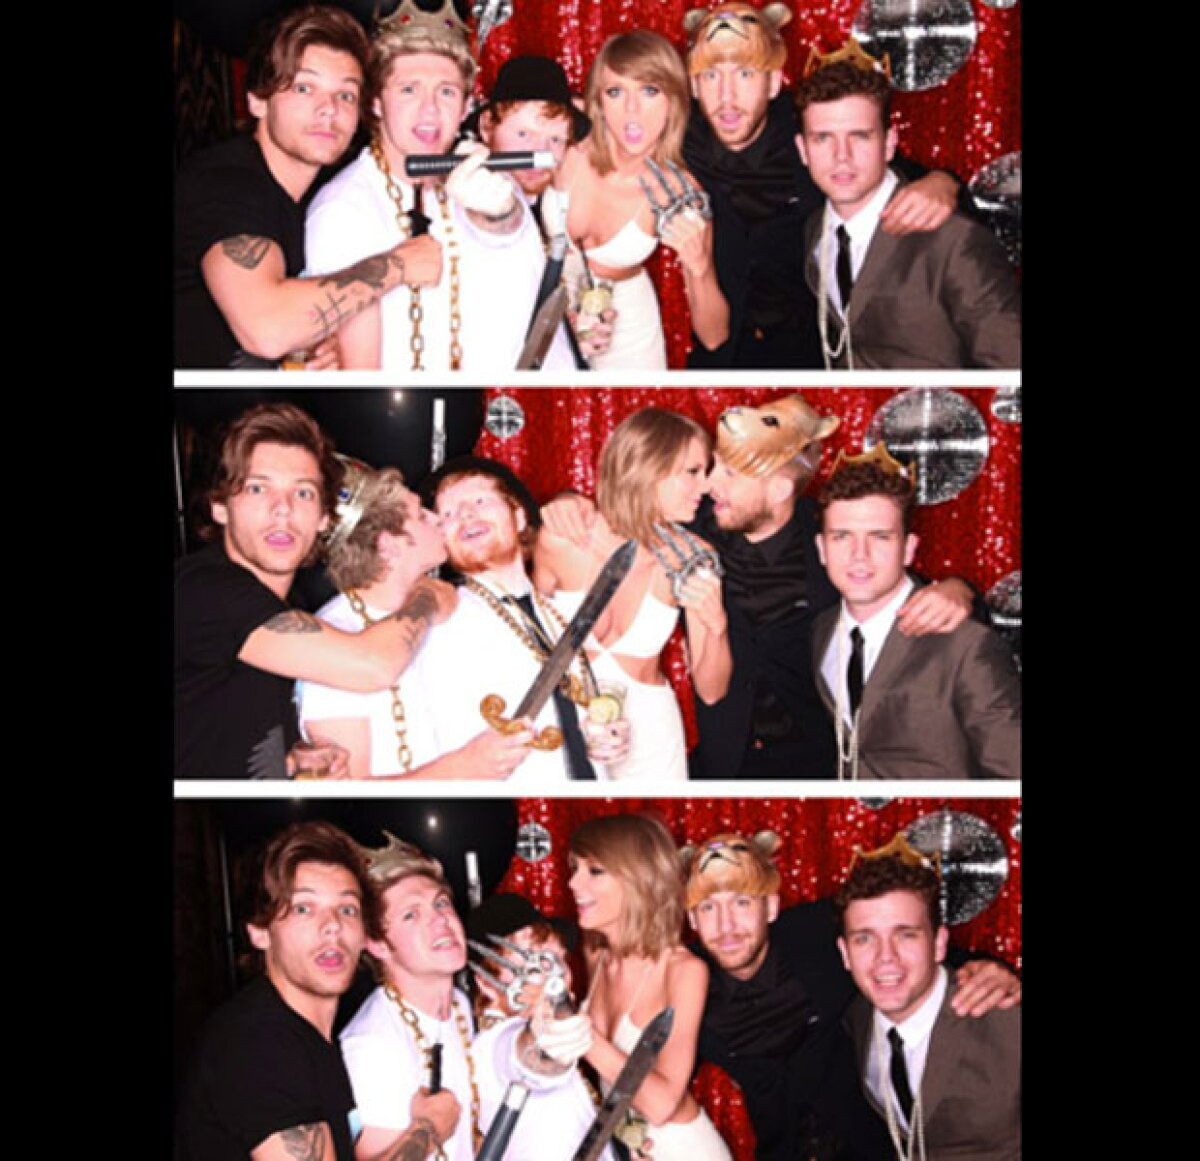 Celebs festejan en afterparty con Taylor Swift